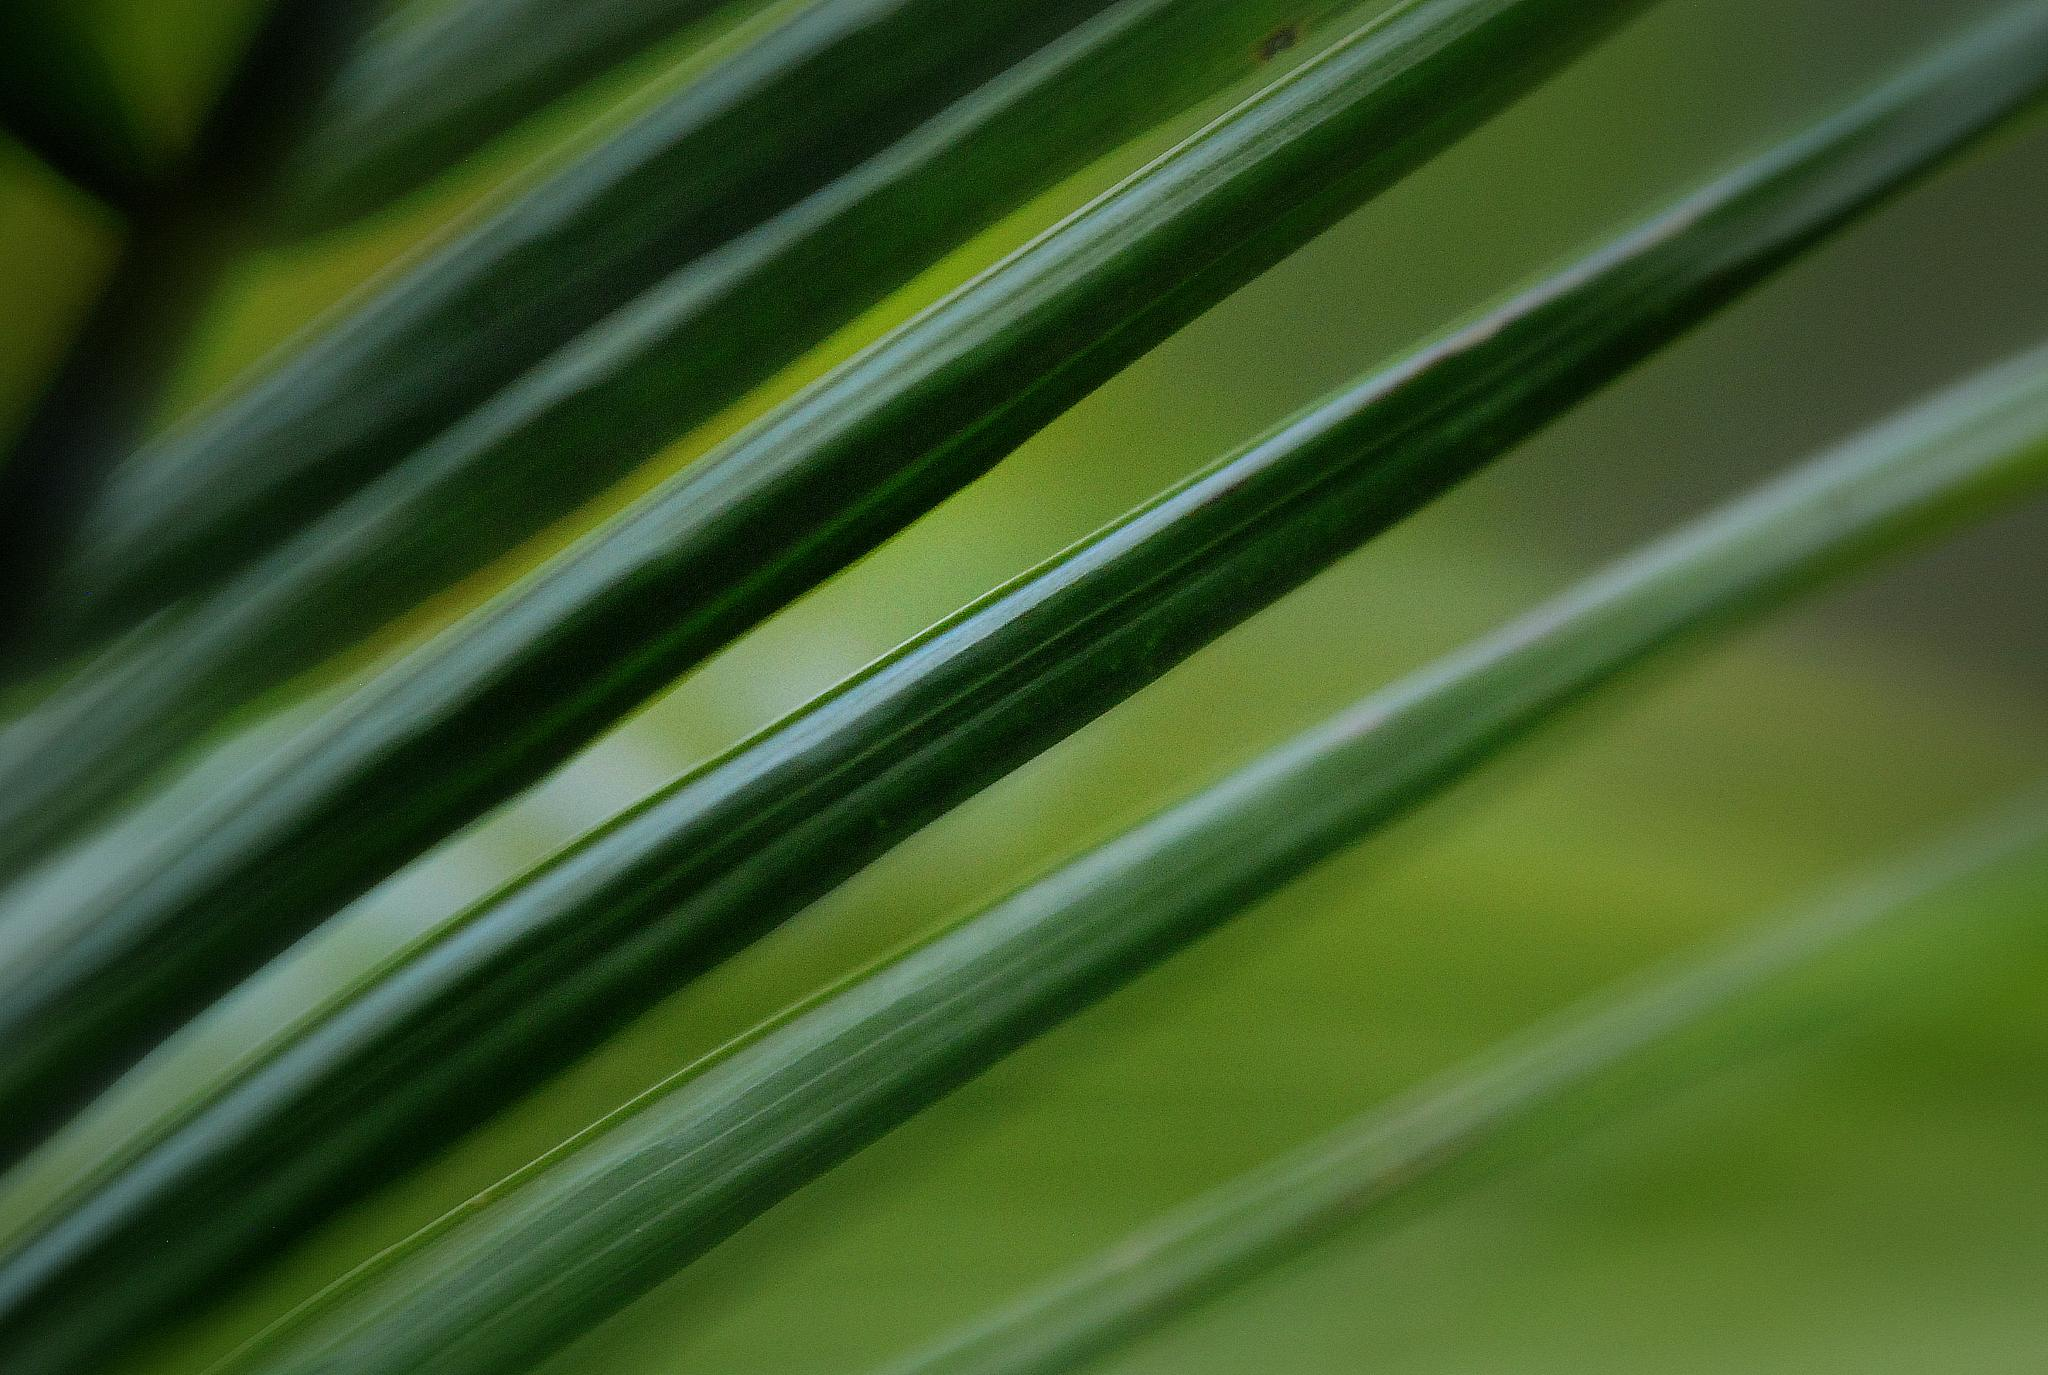 Shades of Green by mpross1